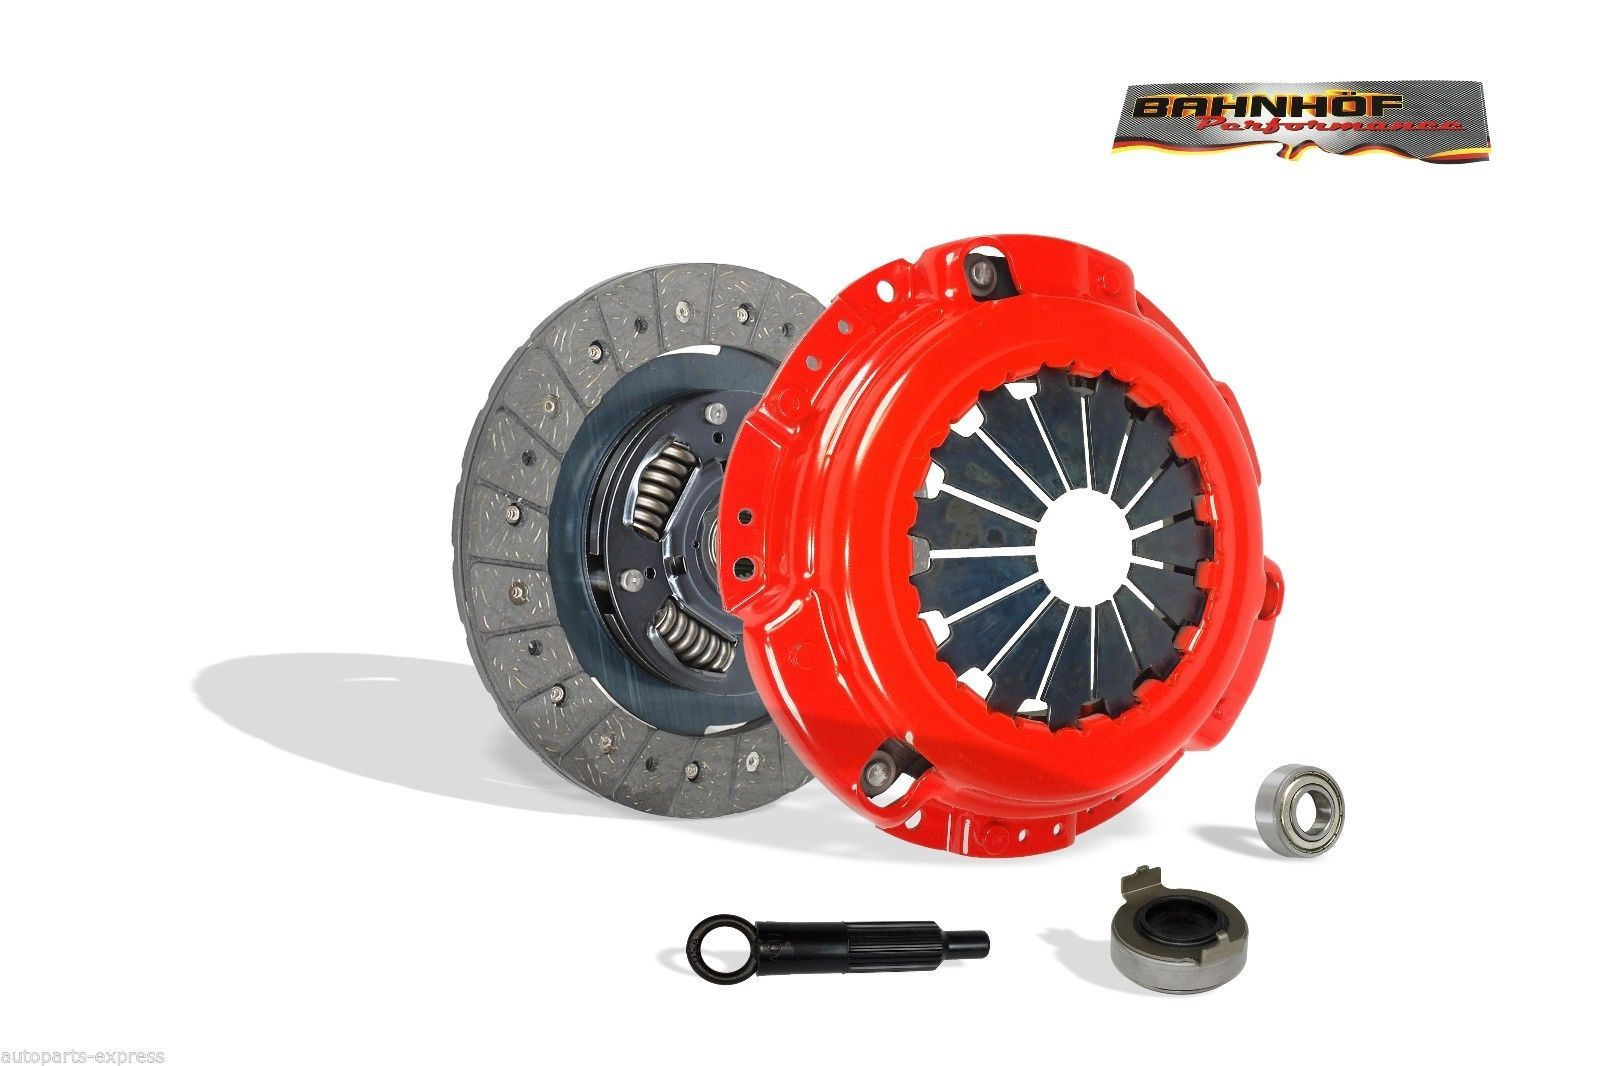 hight resolution of clutch kit racing hd bahnhof for 90 03 honda accord prelude acura cl f22 f23